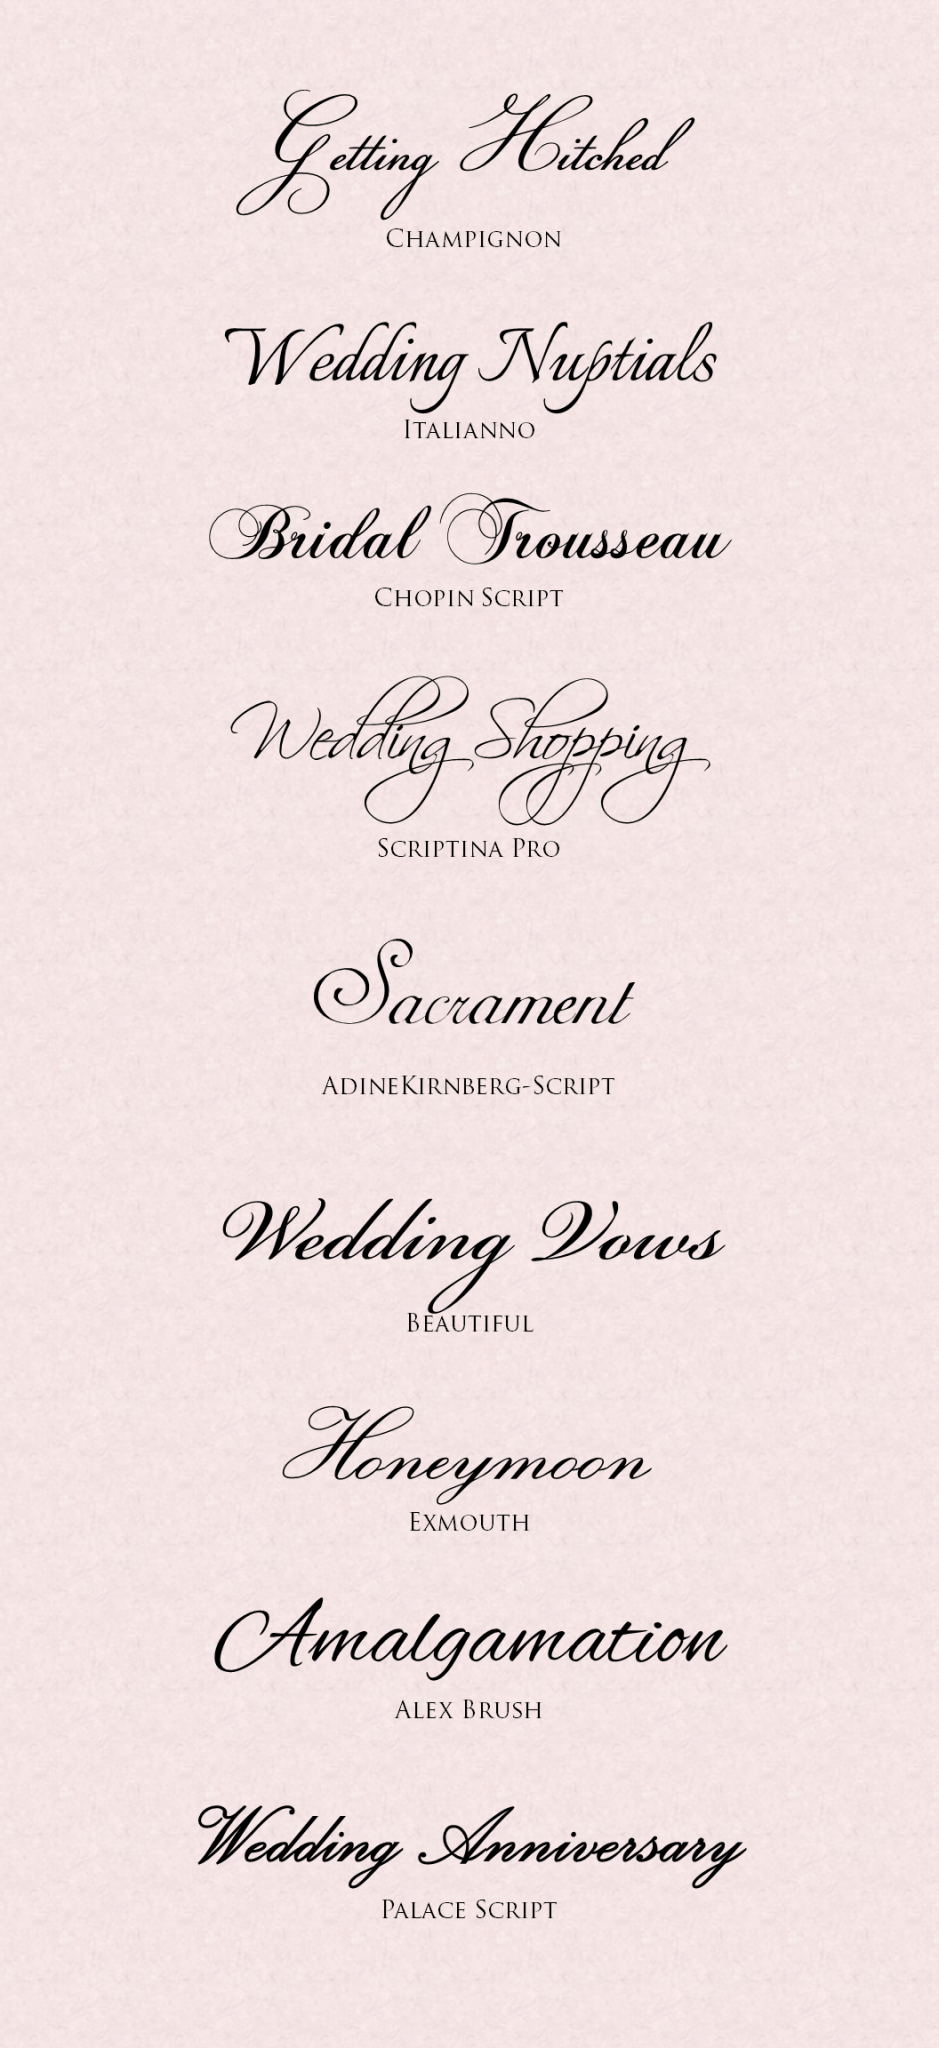 wedding invitation fonts featured on memorable indian weddings indian wedding png fonts - Wedding Invitation Fonts